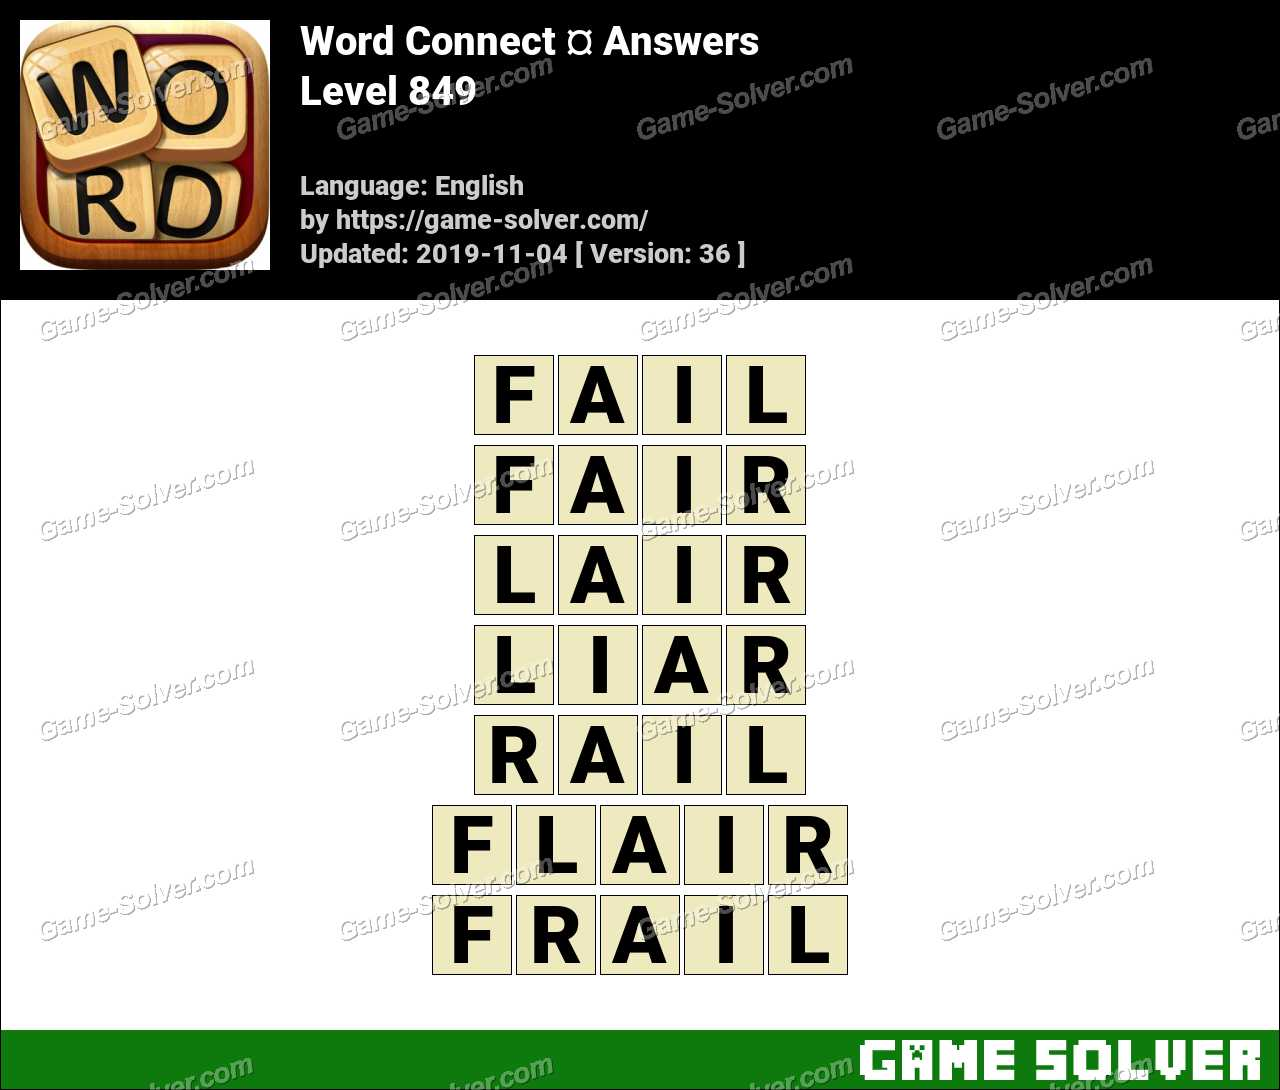 Word Connect Level 849 Answers